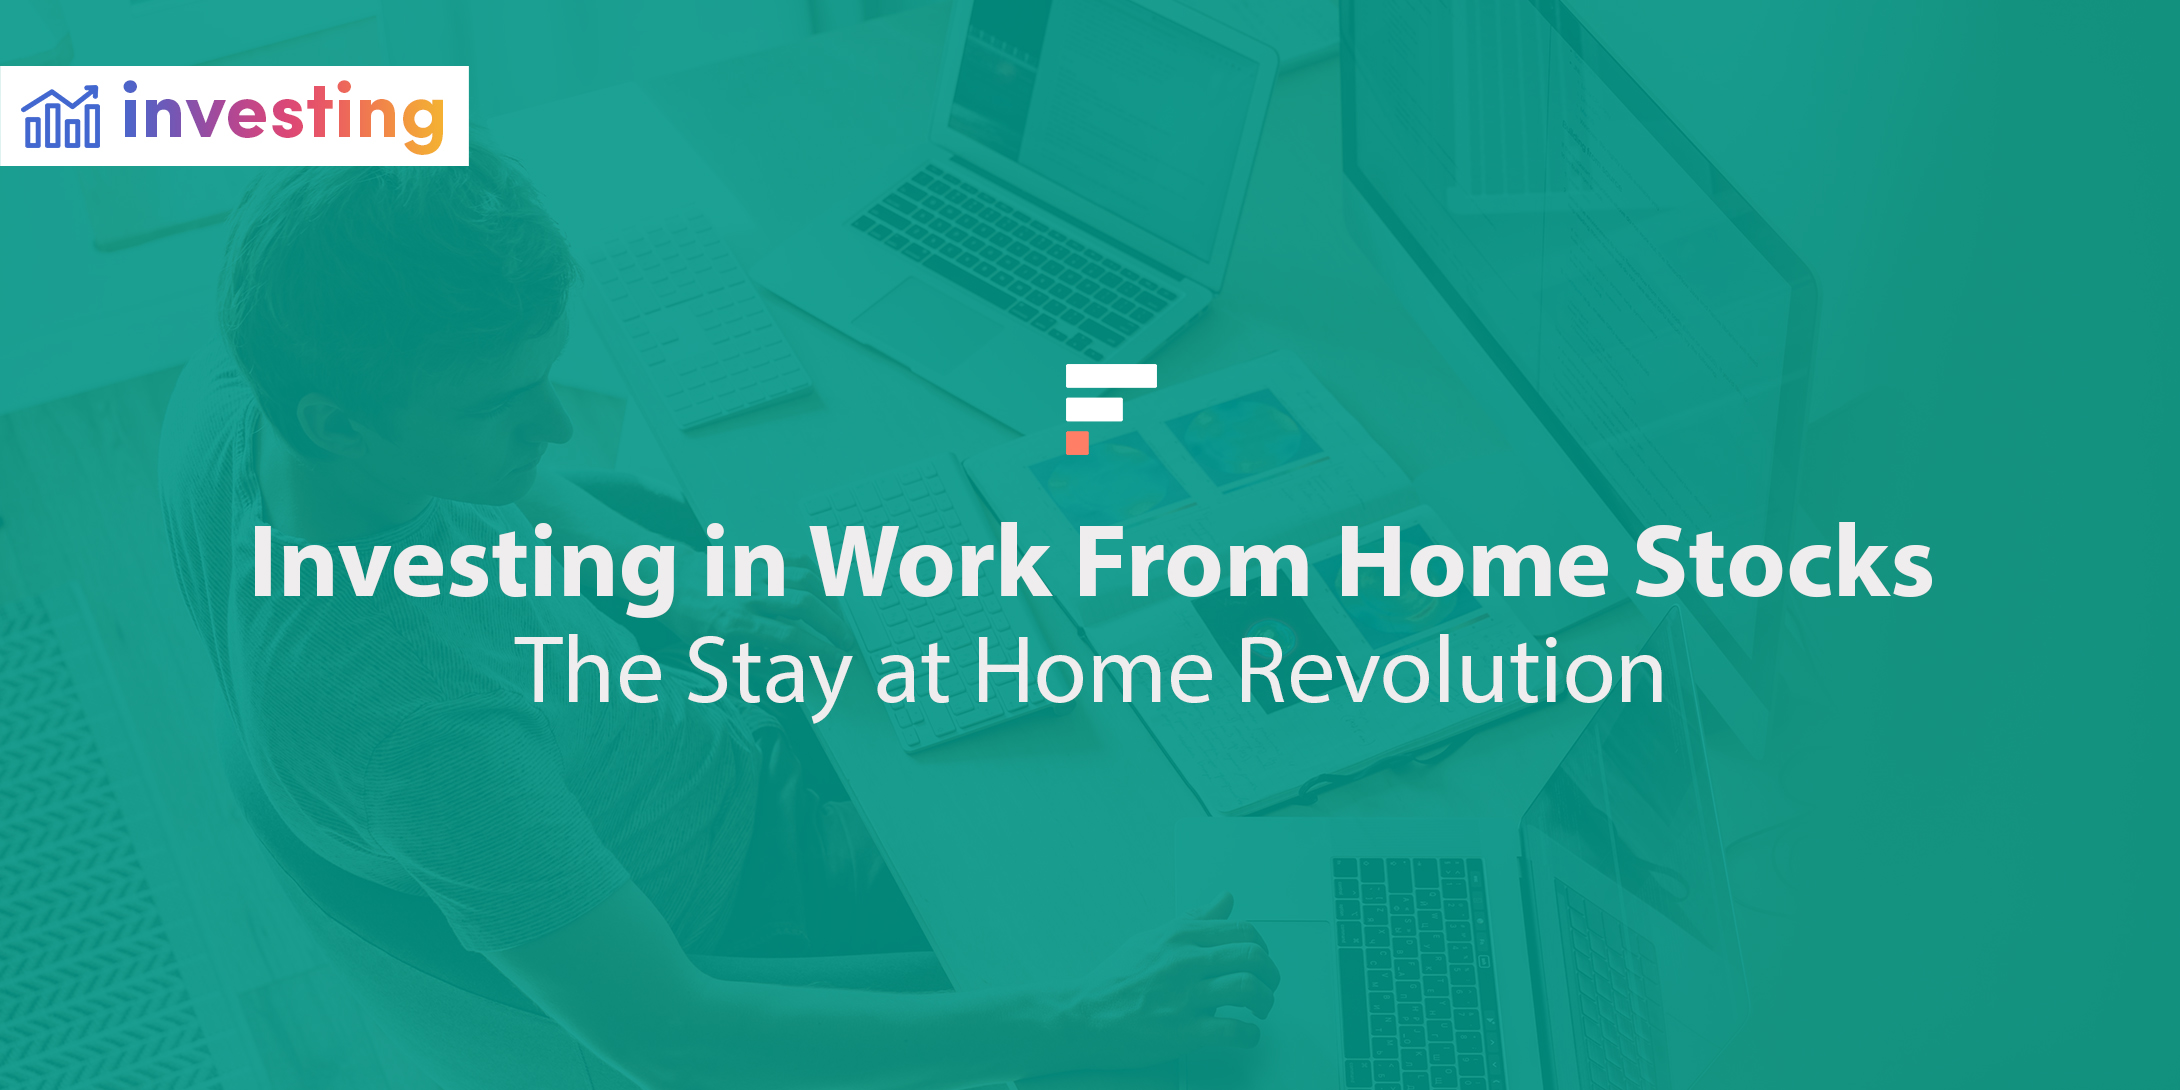 Investing in work from home stocks